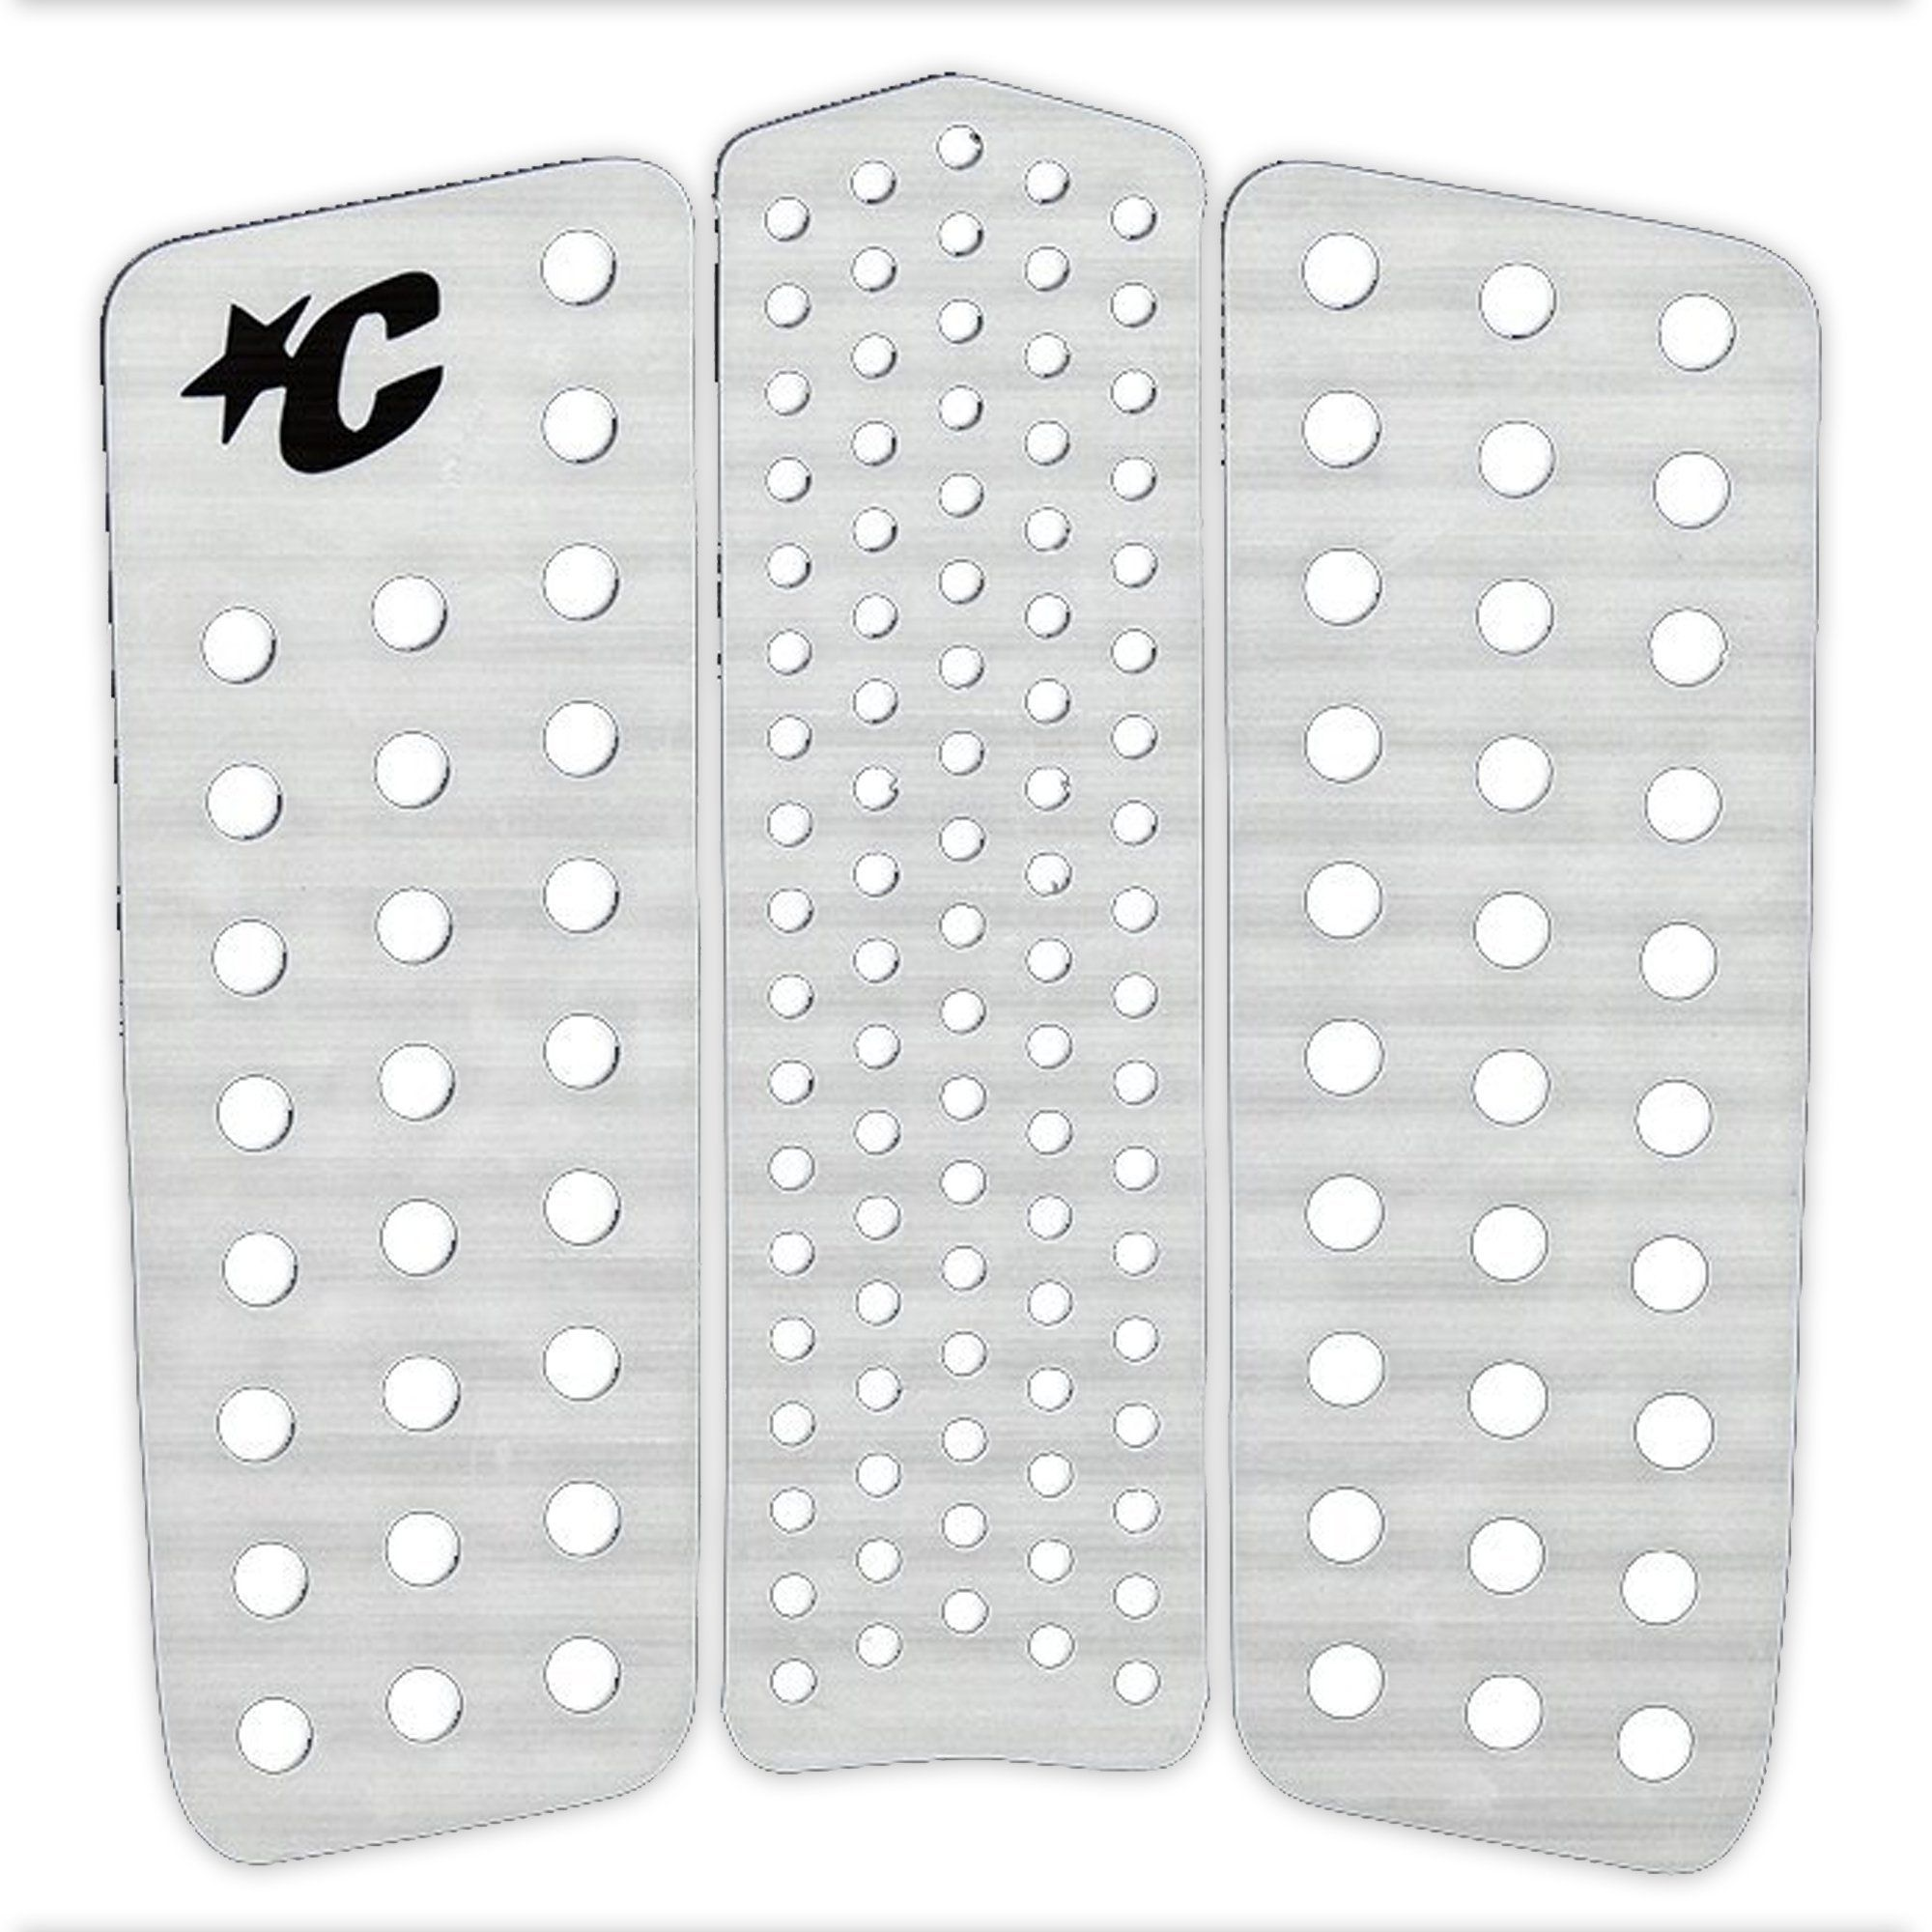 43d5f76f7c Creatures of Leisure Front Deck lll Traction Pad | Products ...